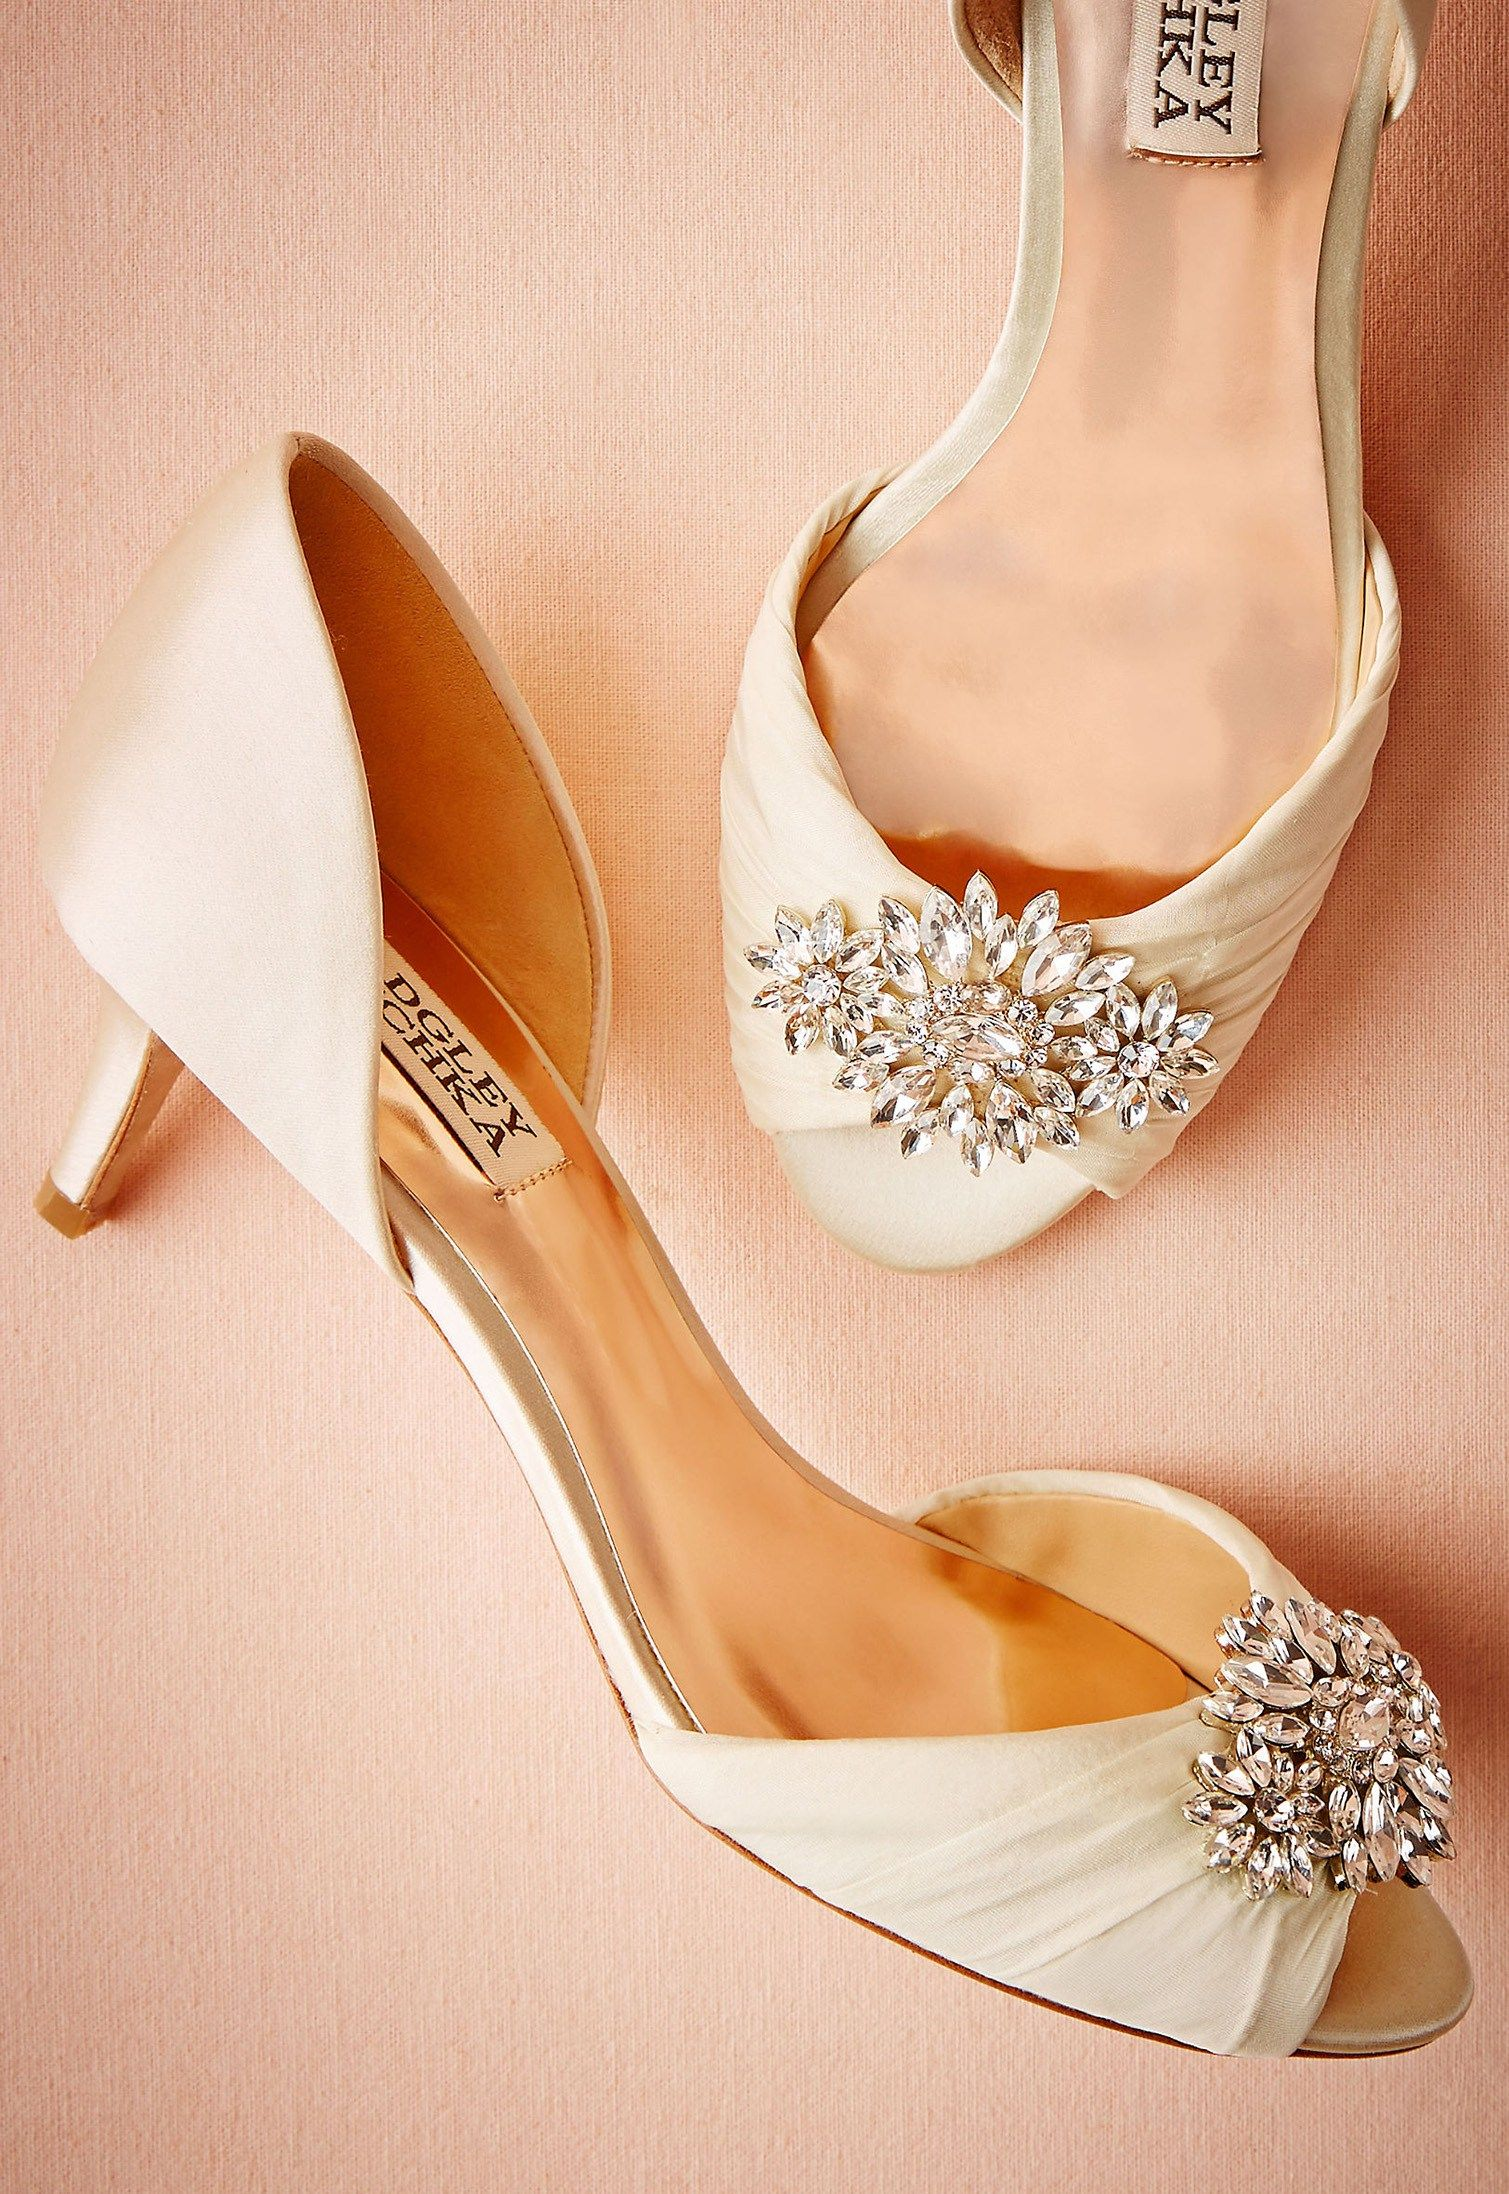 Libretto Kitten Heel Green Wedding Shoes Sparkly Wedding Shoes Wedding Shoes Bridal Shoes